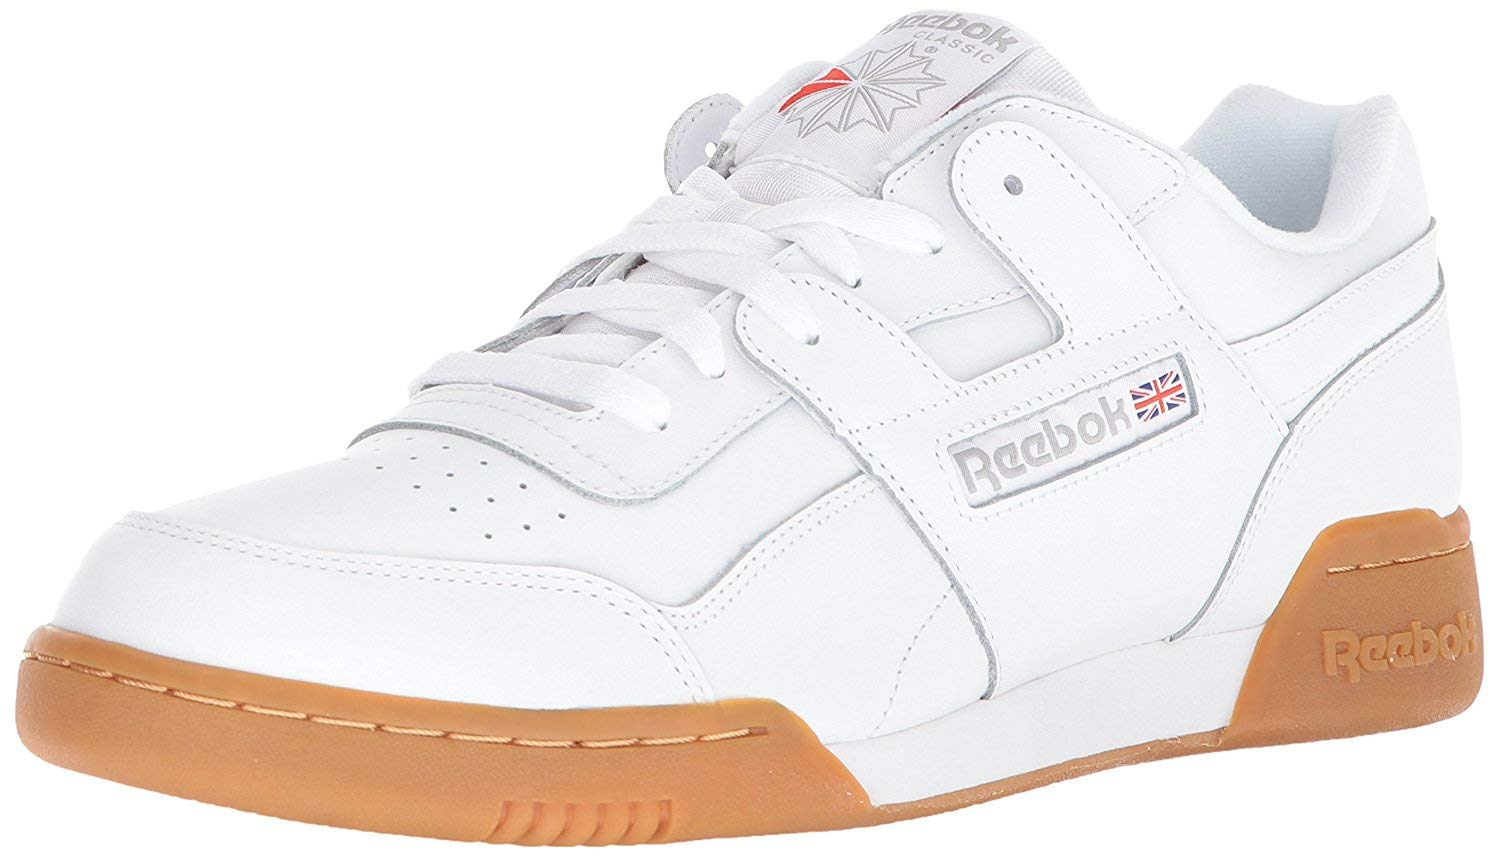 mens Workout Plus Cross Trainer, White/Carbon/Classic Red, 10.5 US